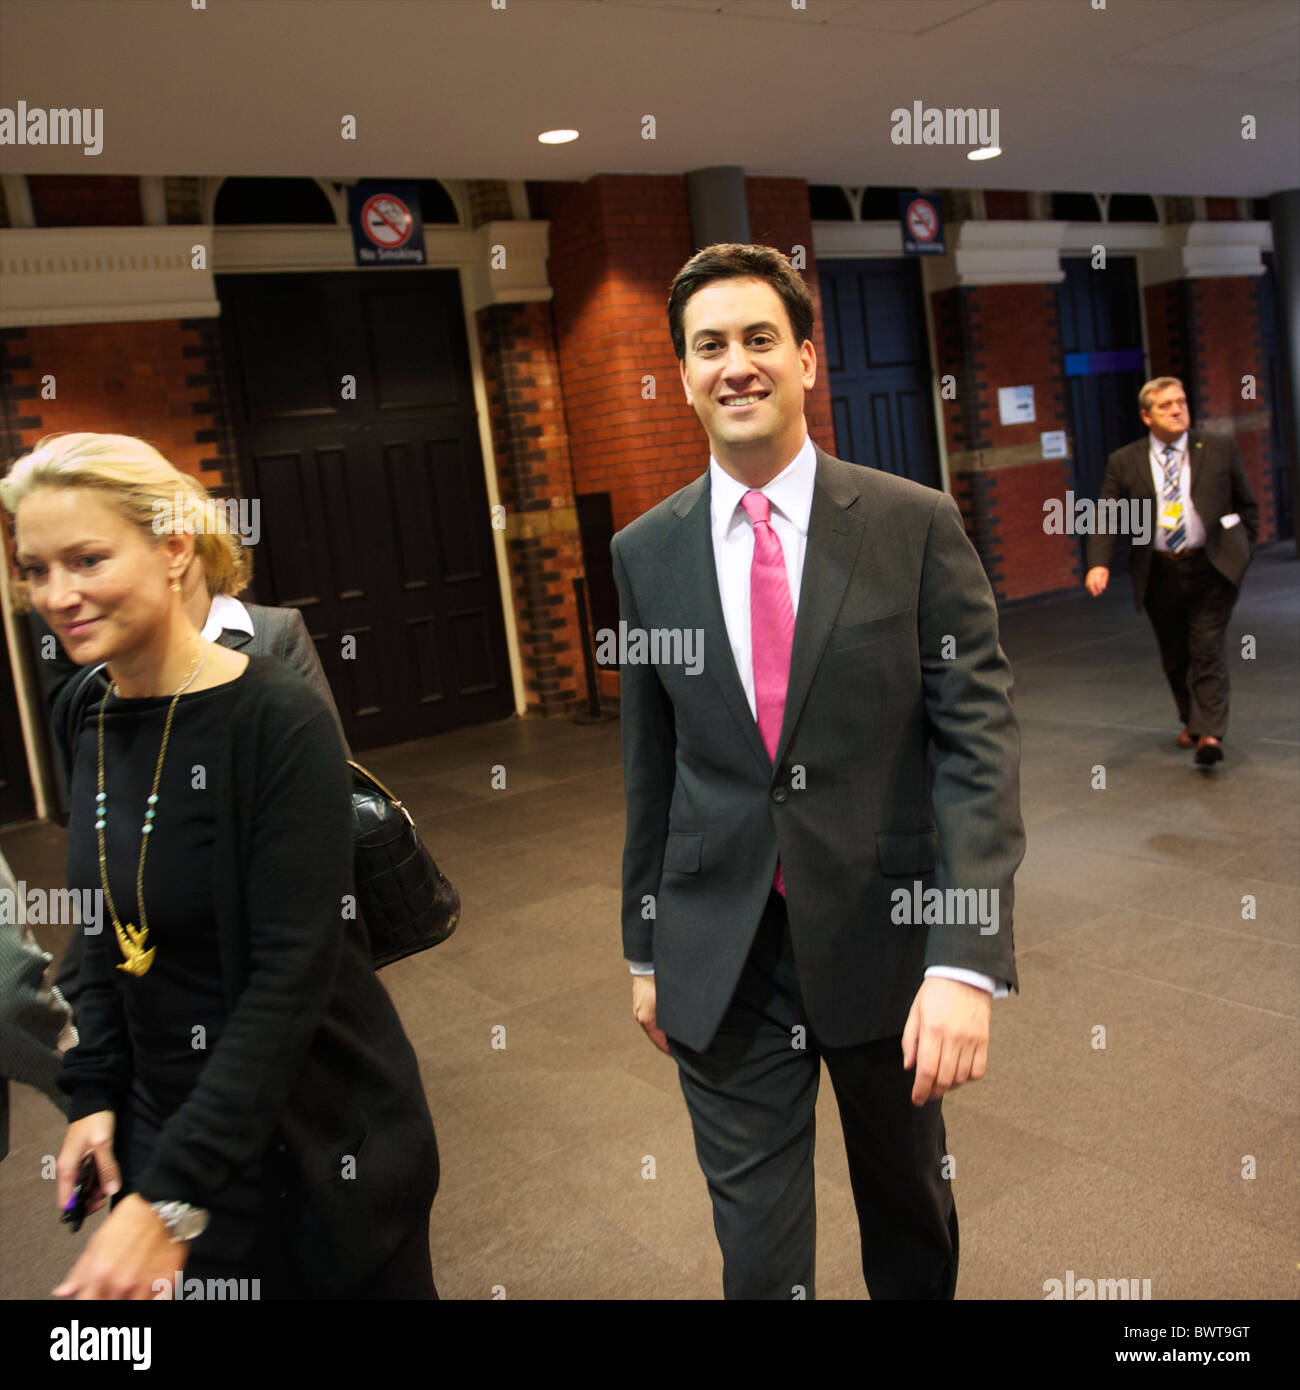 Newly elected Labour leader Ed Miliband departs the auditorium at the Labour Party Conference in Manchester on 29 - Stock Image